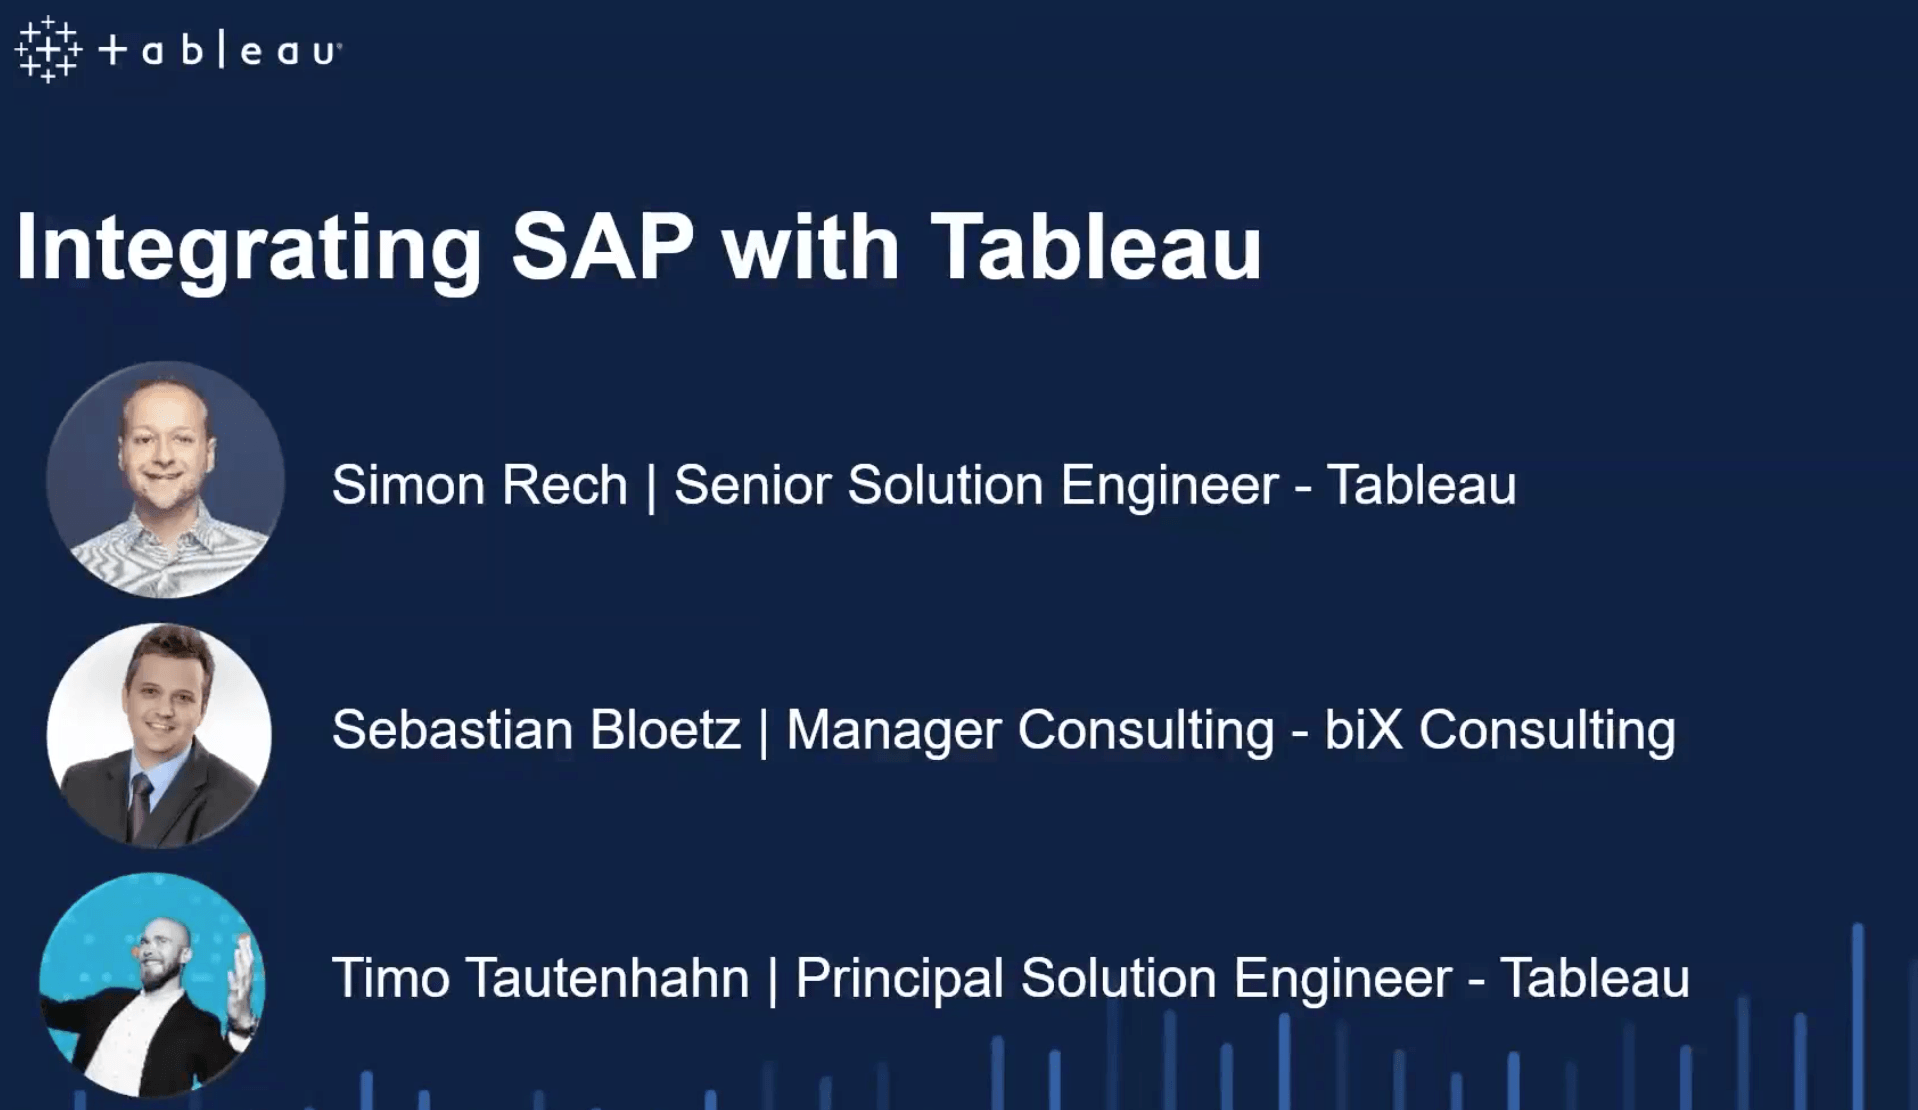 image of <p>Webinar: Integrating SAP with Tableau</p>